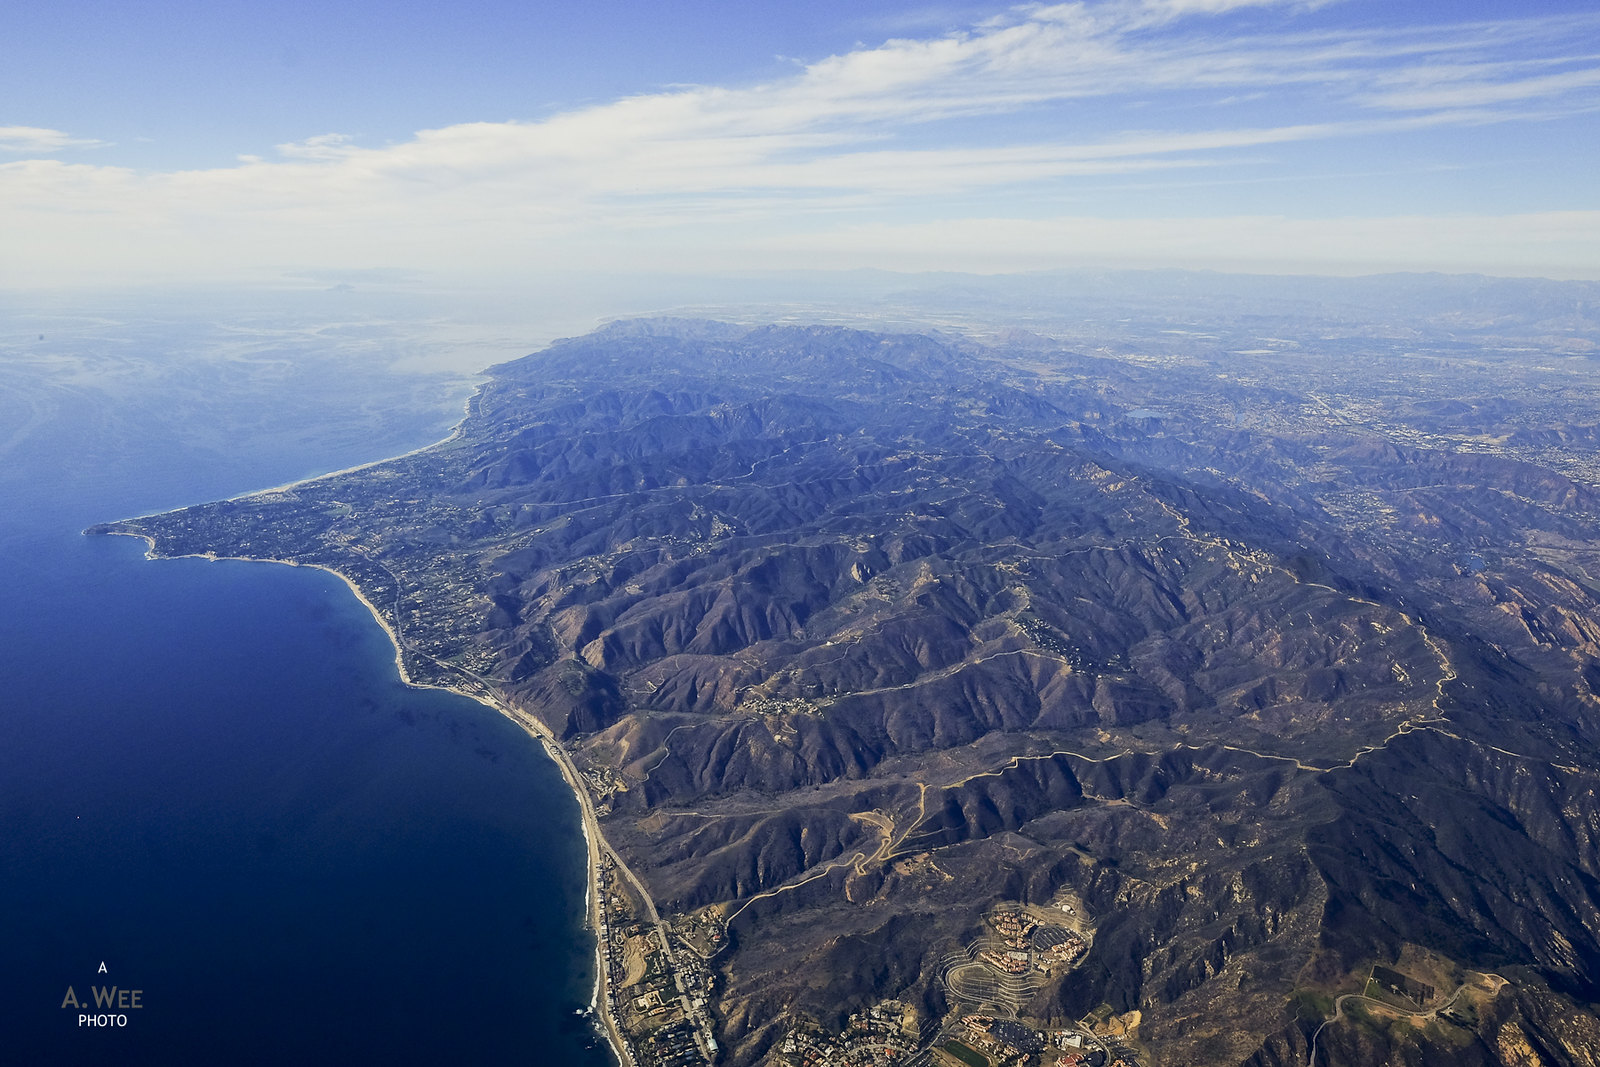 Flying over Malibu